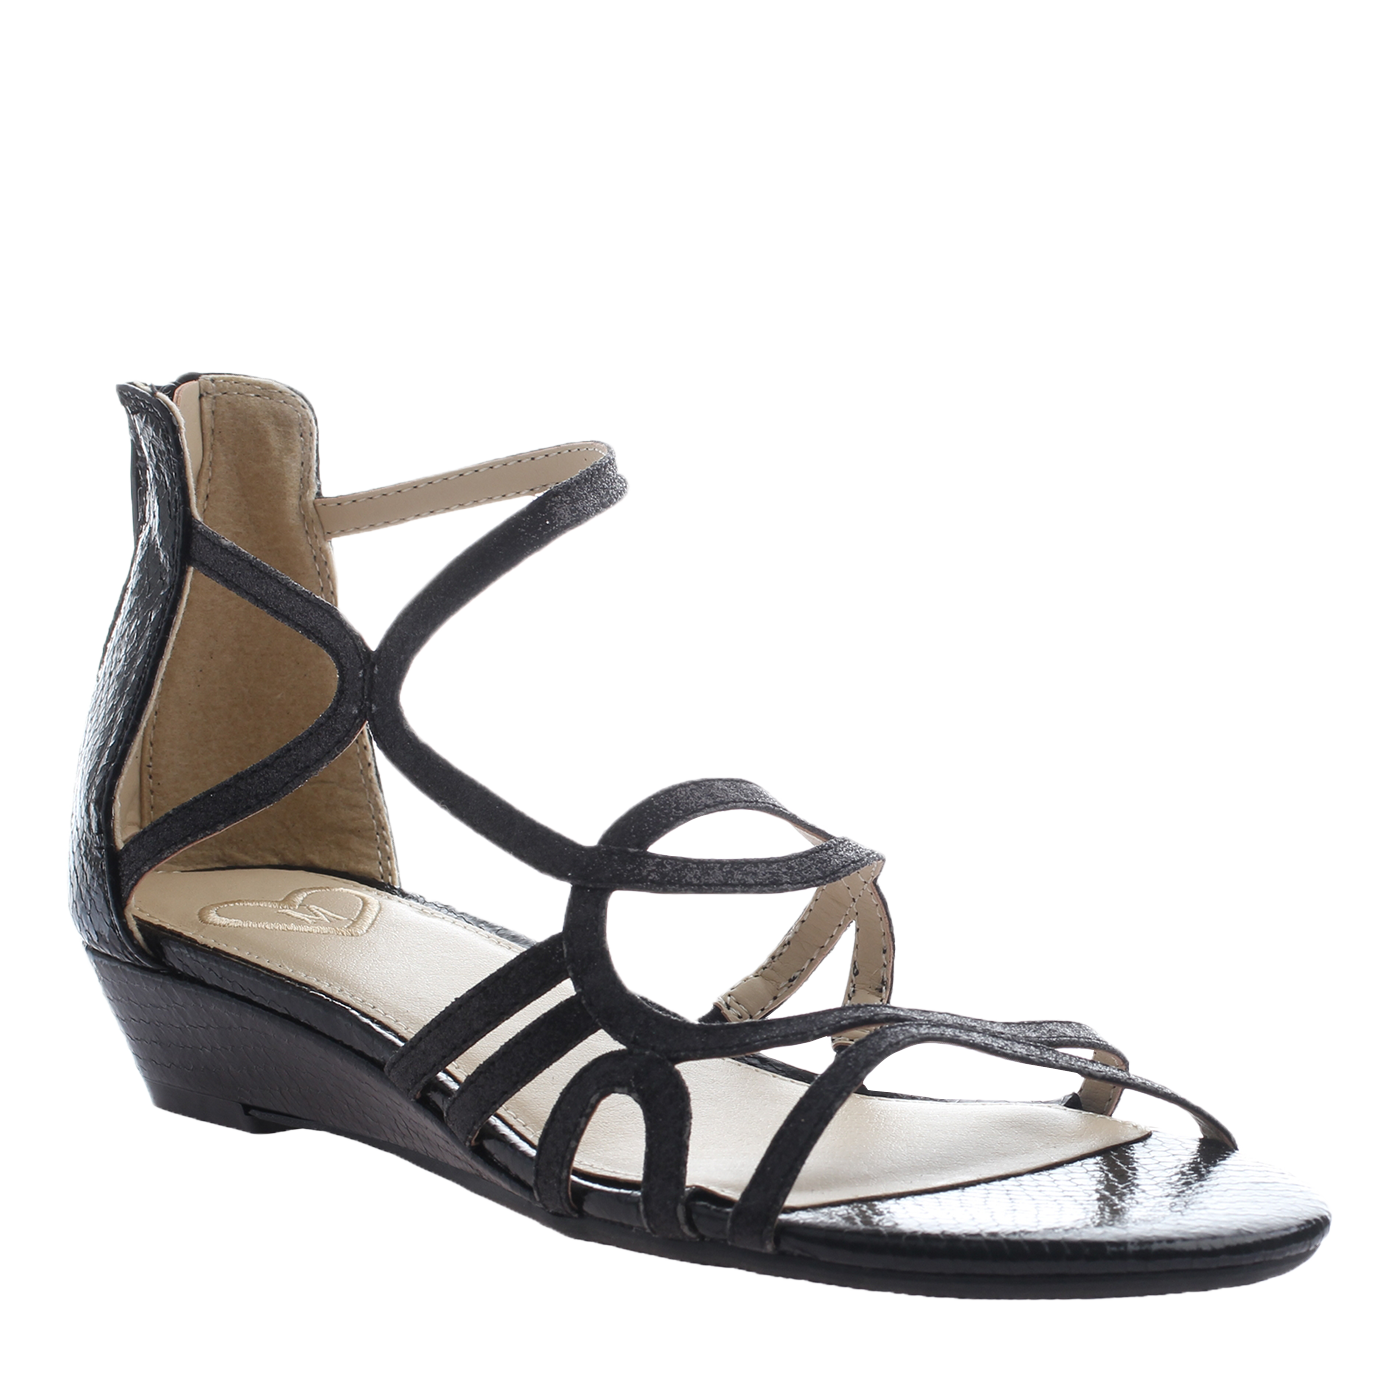 MADELINE Sizzle Sandals aDcBlkXr7